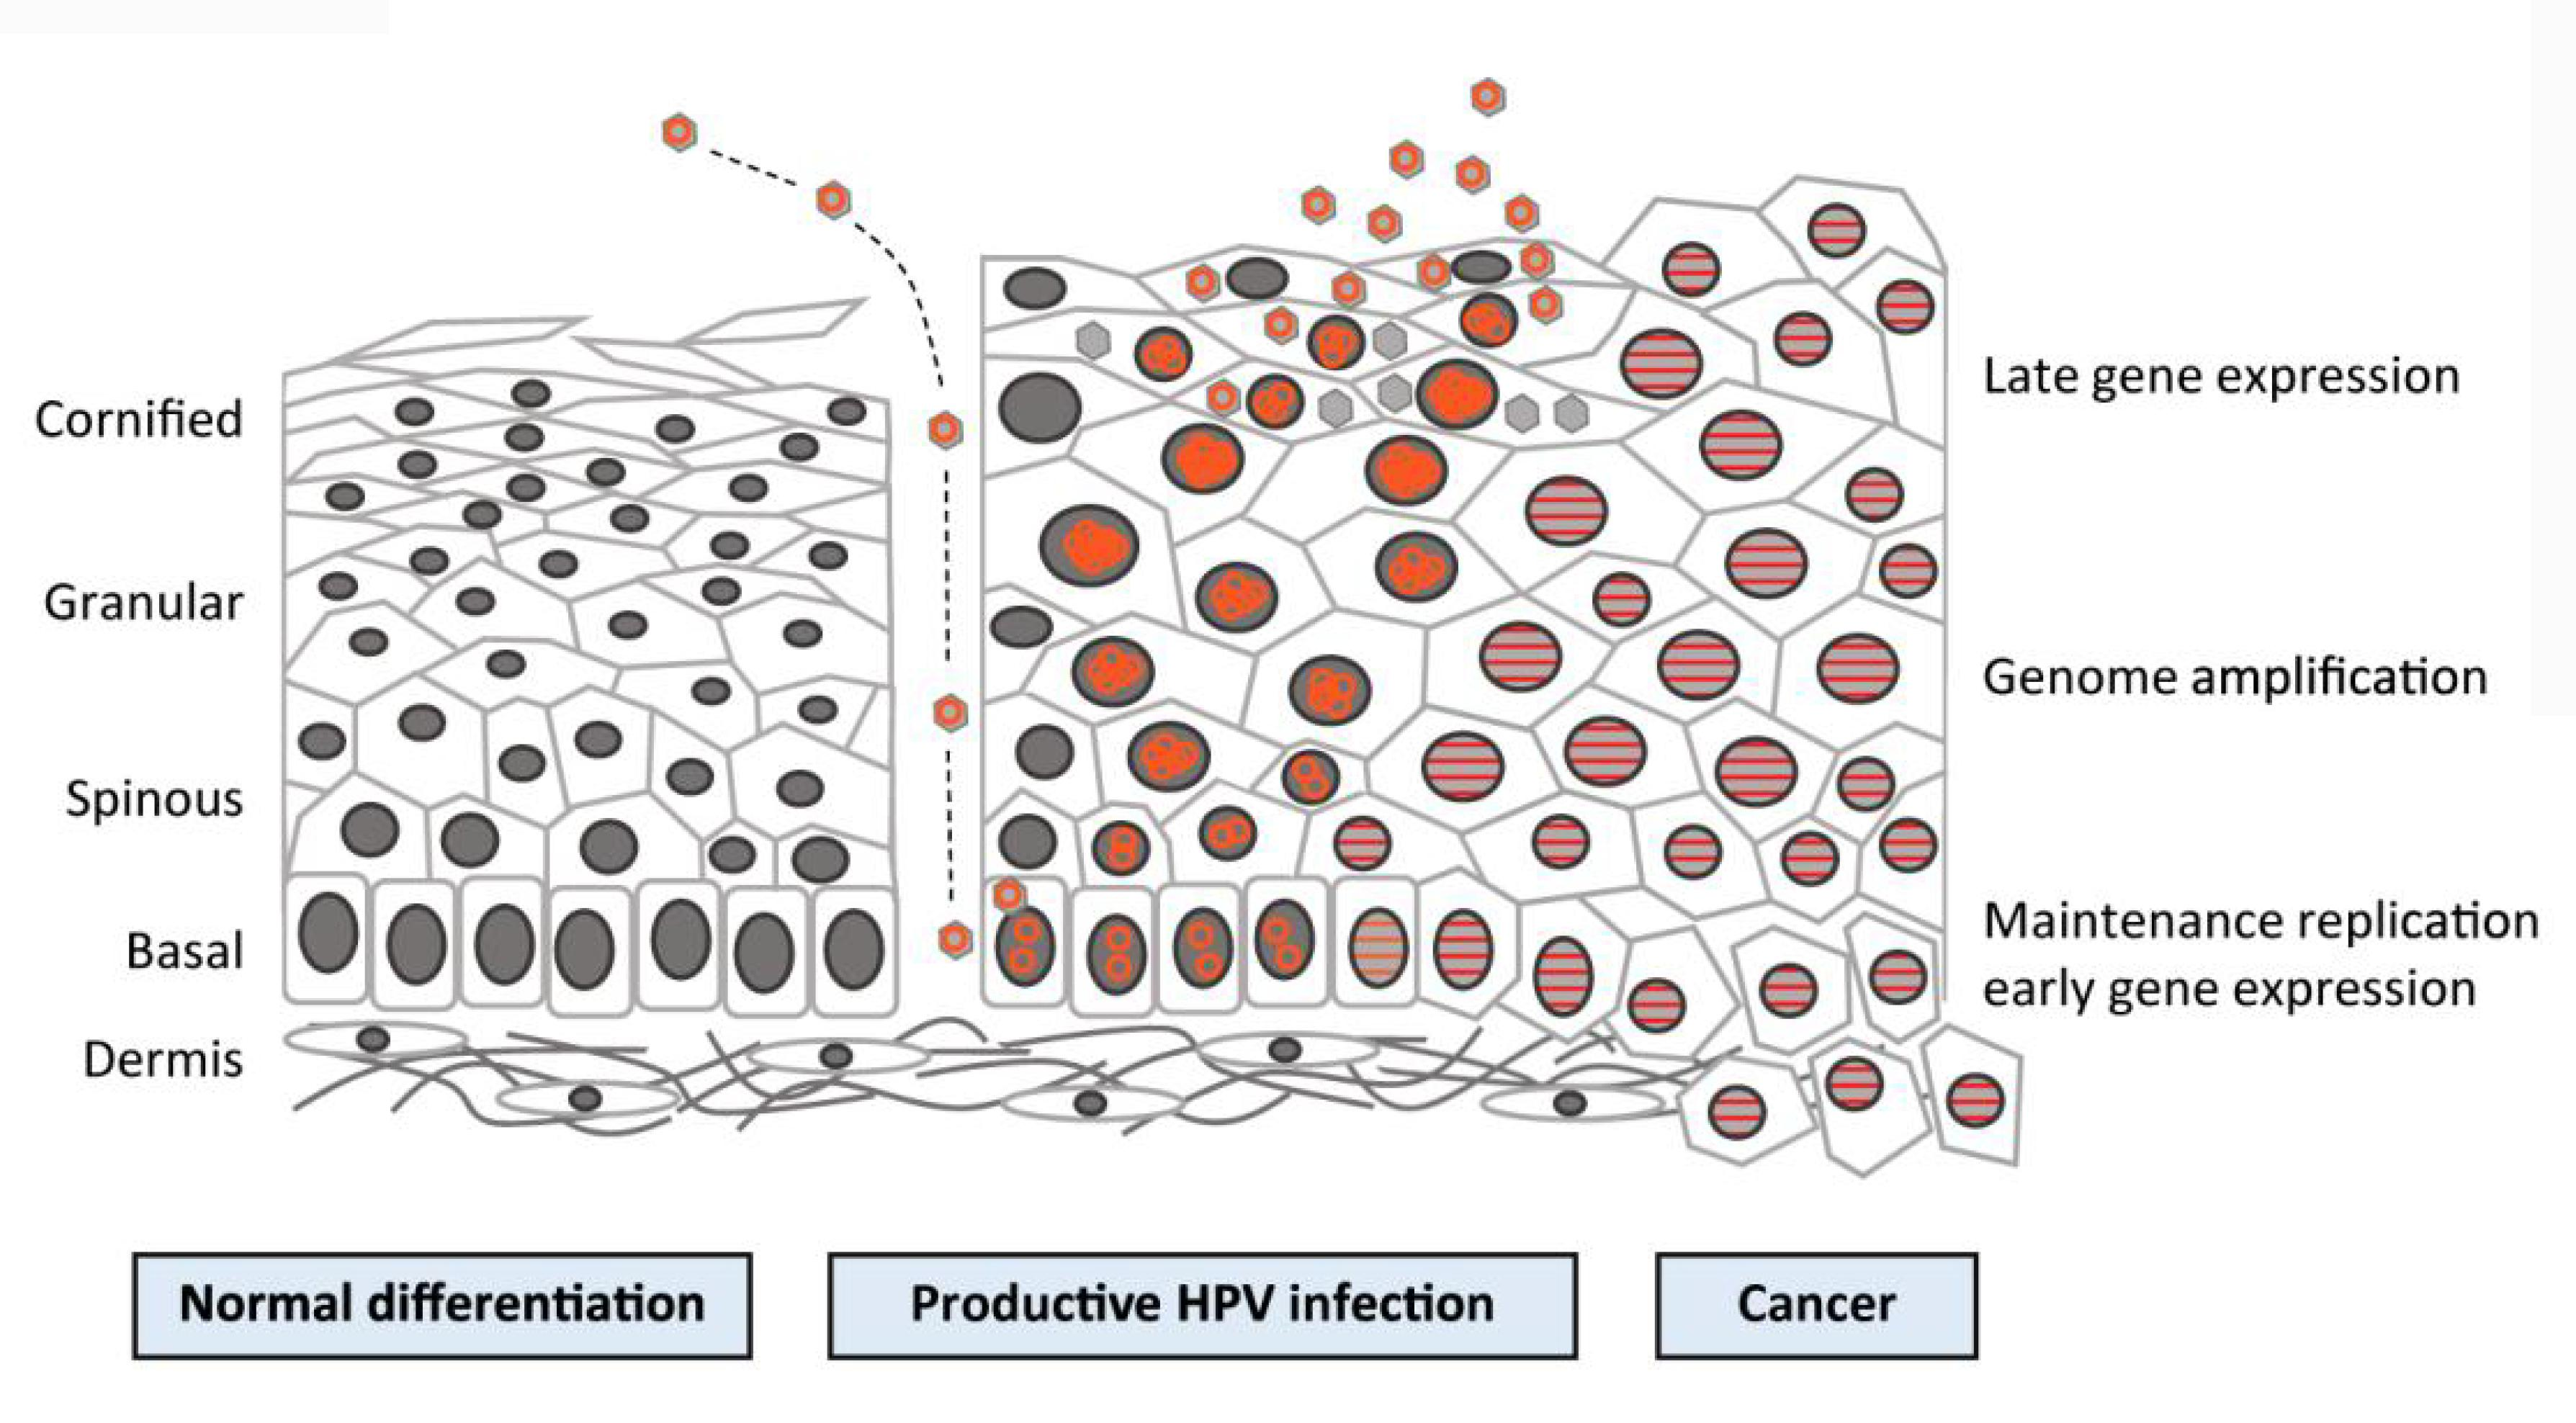 hpv initiates cancer development through increased expression of